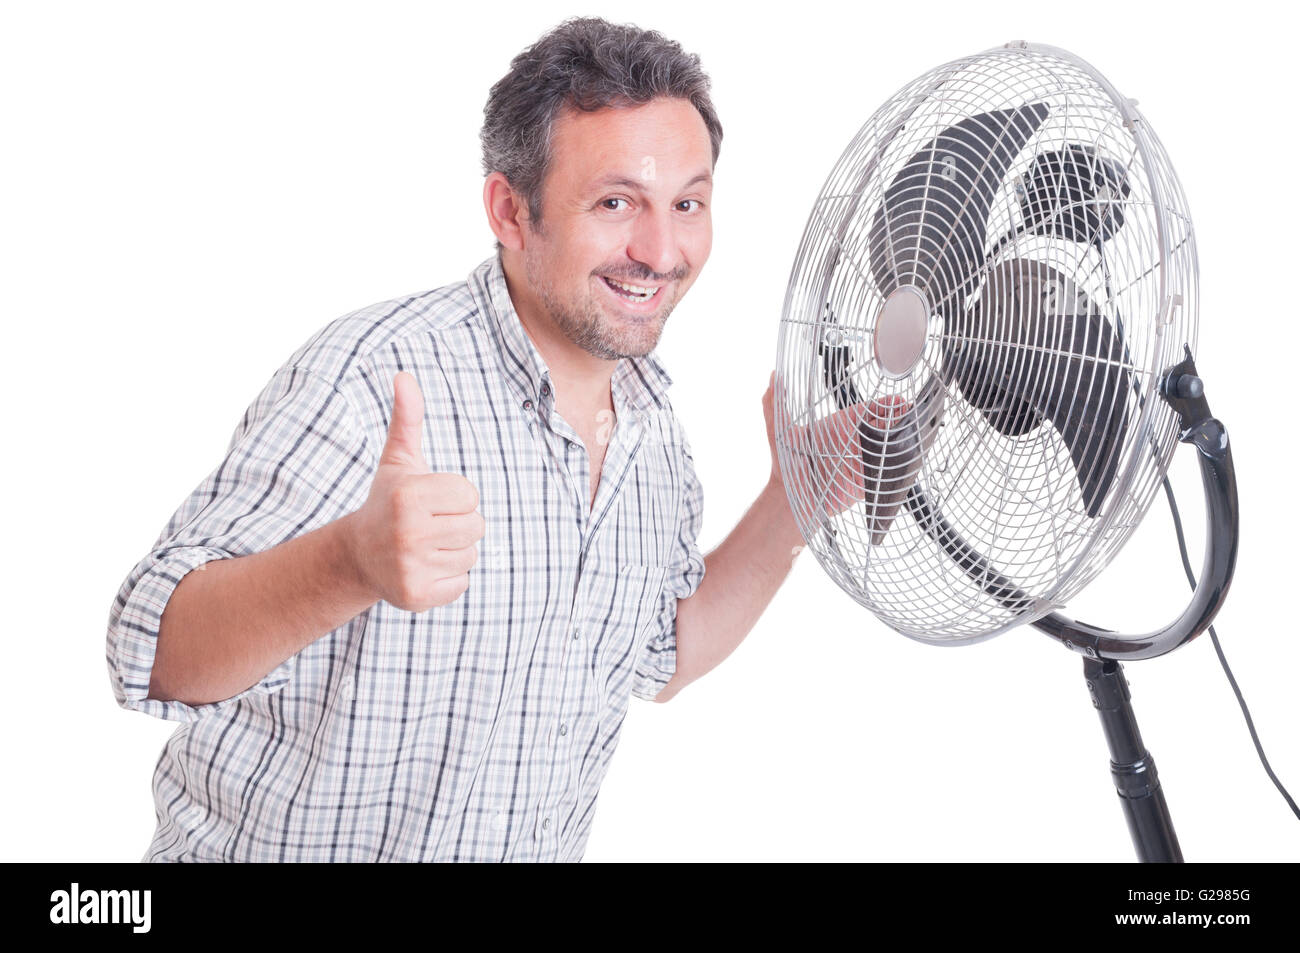 Smiling man showing like gesture in front of blowing cooler as summer heat concept - Stock Image